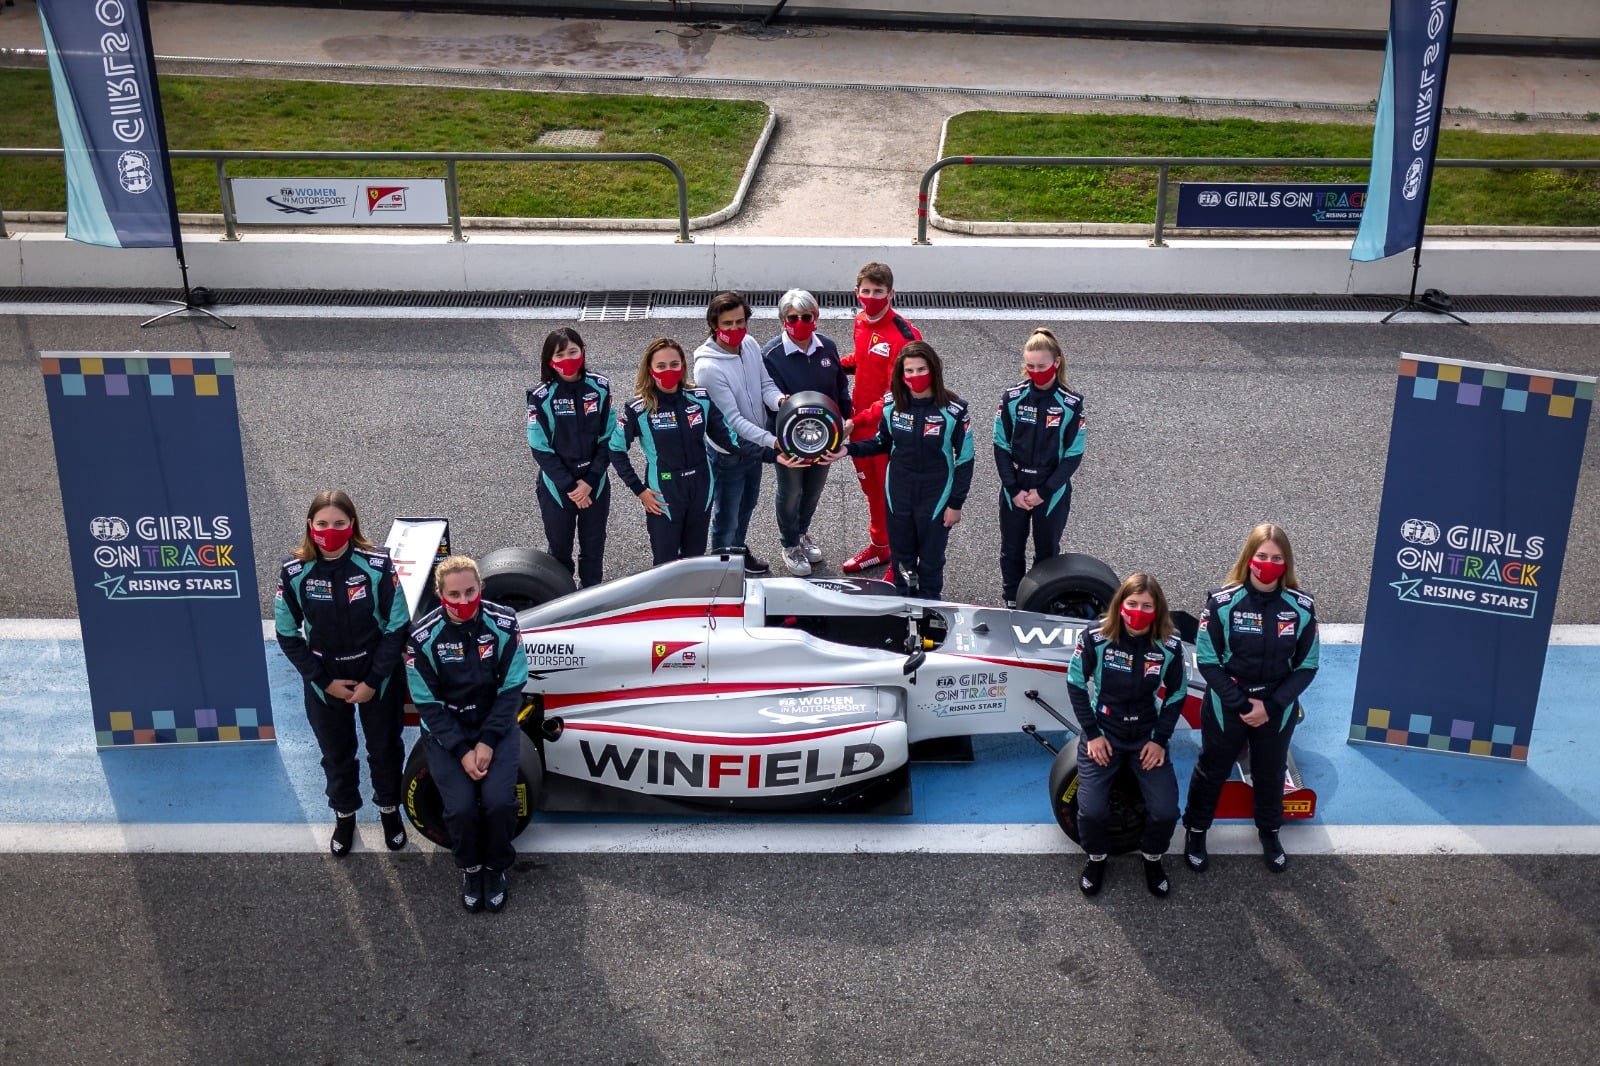 Final stage of the FIA Girls on Track – Rising Stars programme underway in Maranello 10-13 November 2020